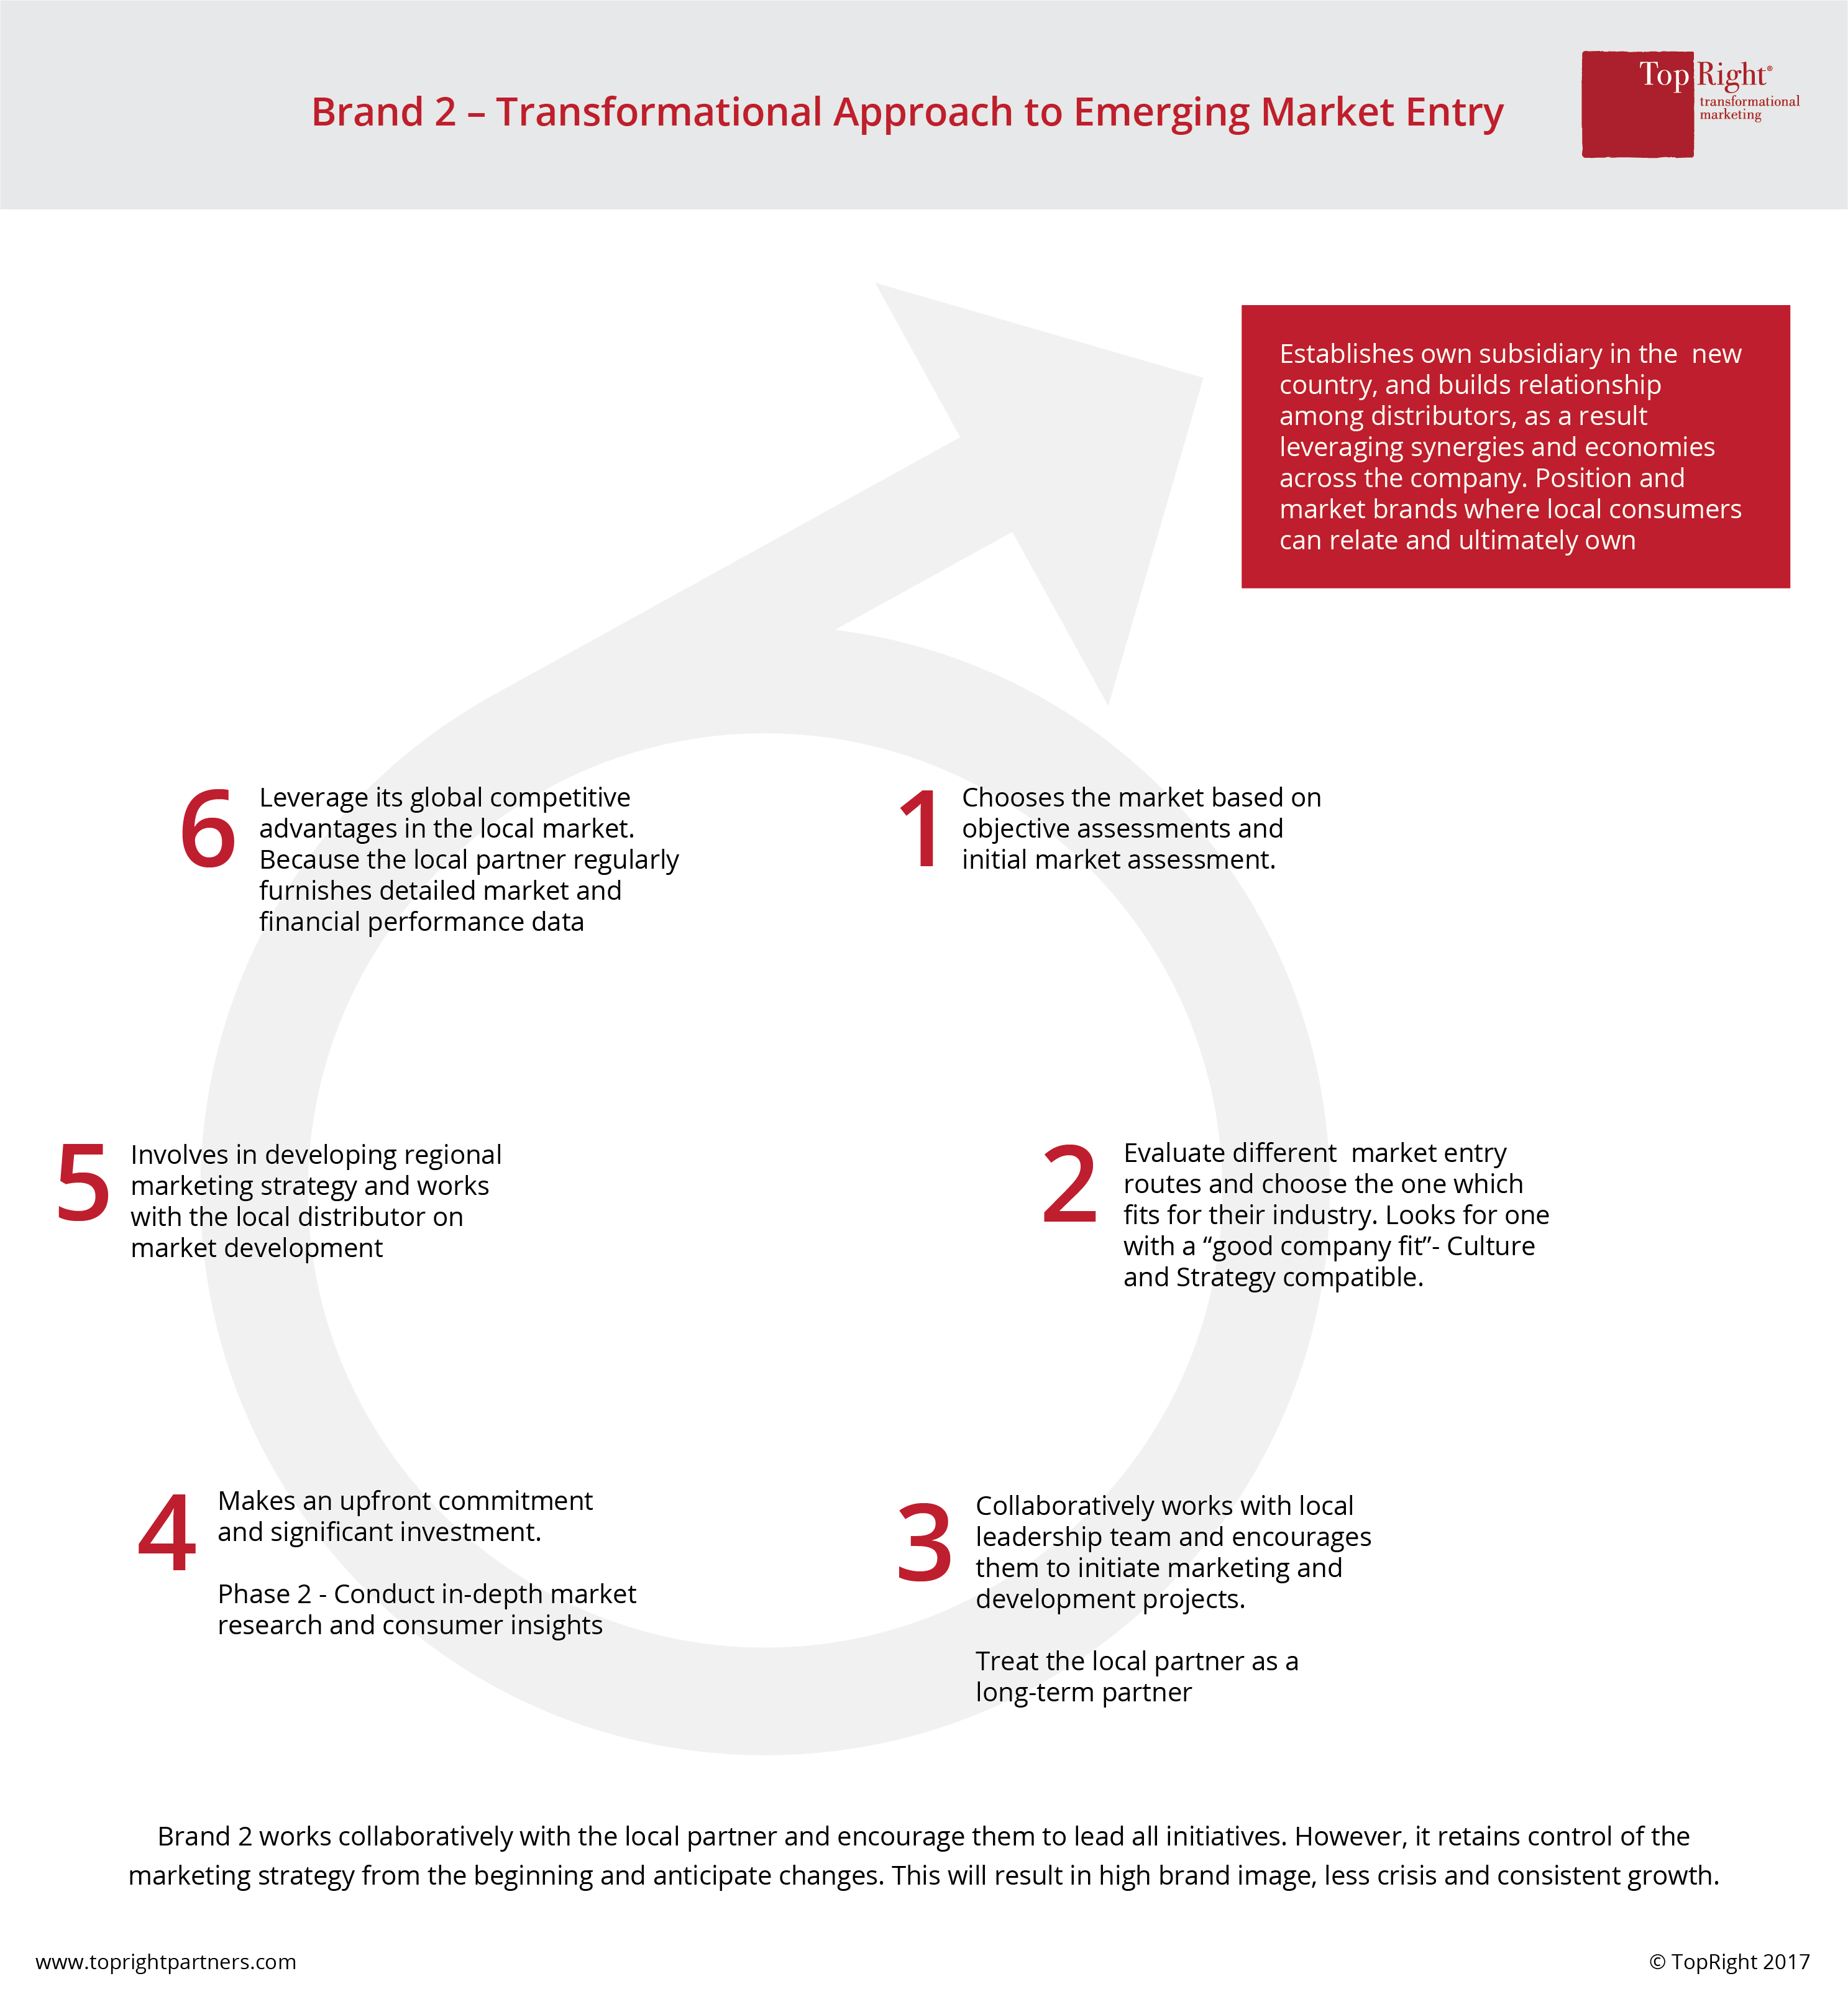 global-emerging-market-entry-transformational-topright